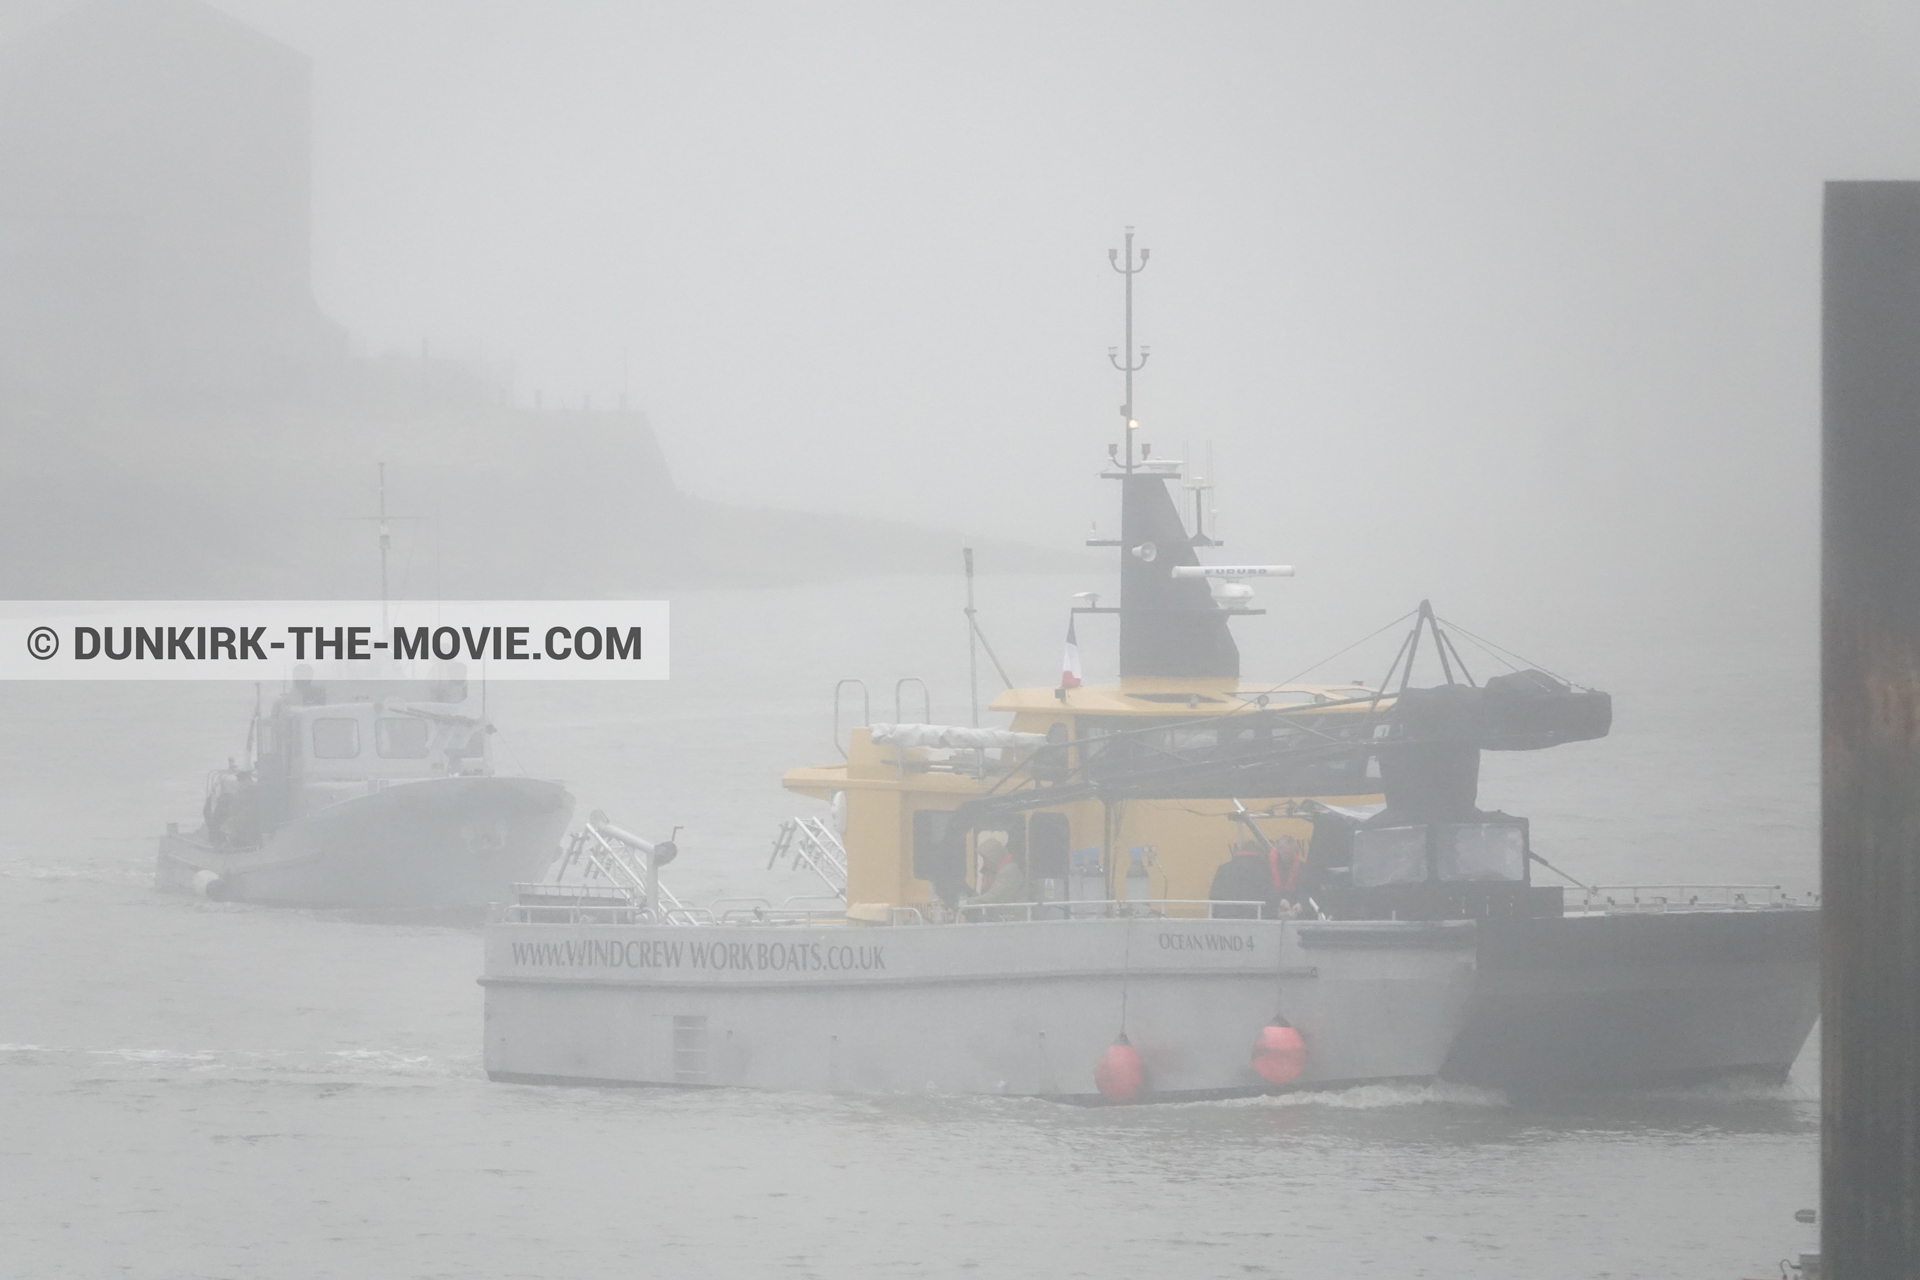 Picture with boat, grey sky, Ocean Wind 4, Dunkirk lighthouse, PR 22,  from behind the scene of the Dunkirk movie by Nolan